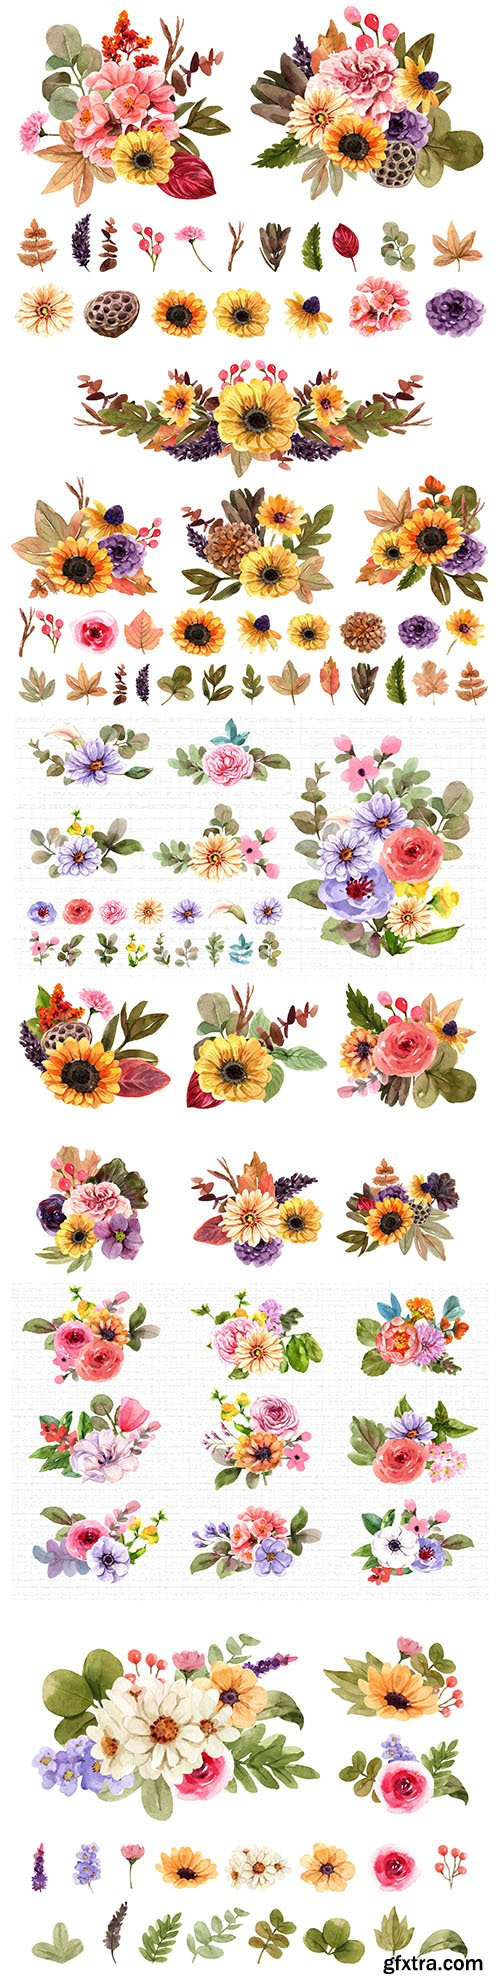 Watercolor set of bouquet and flower elements